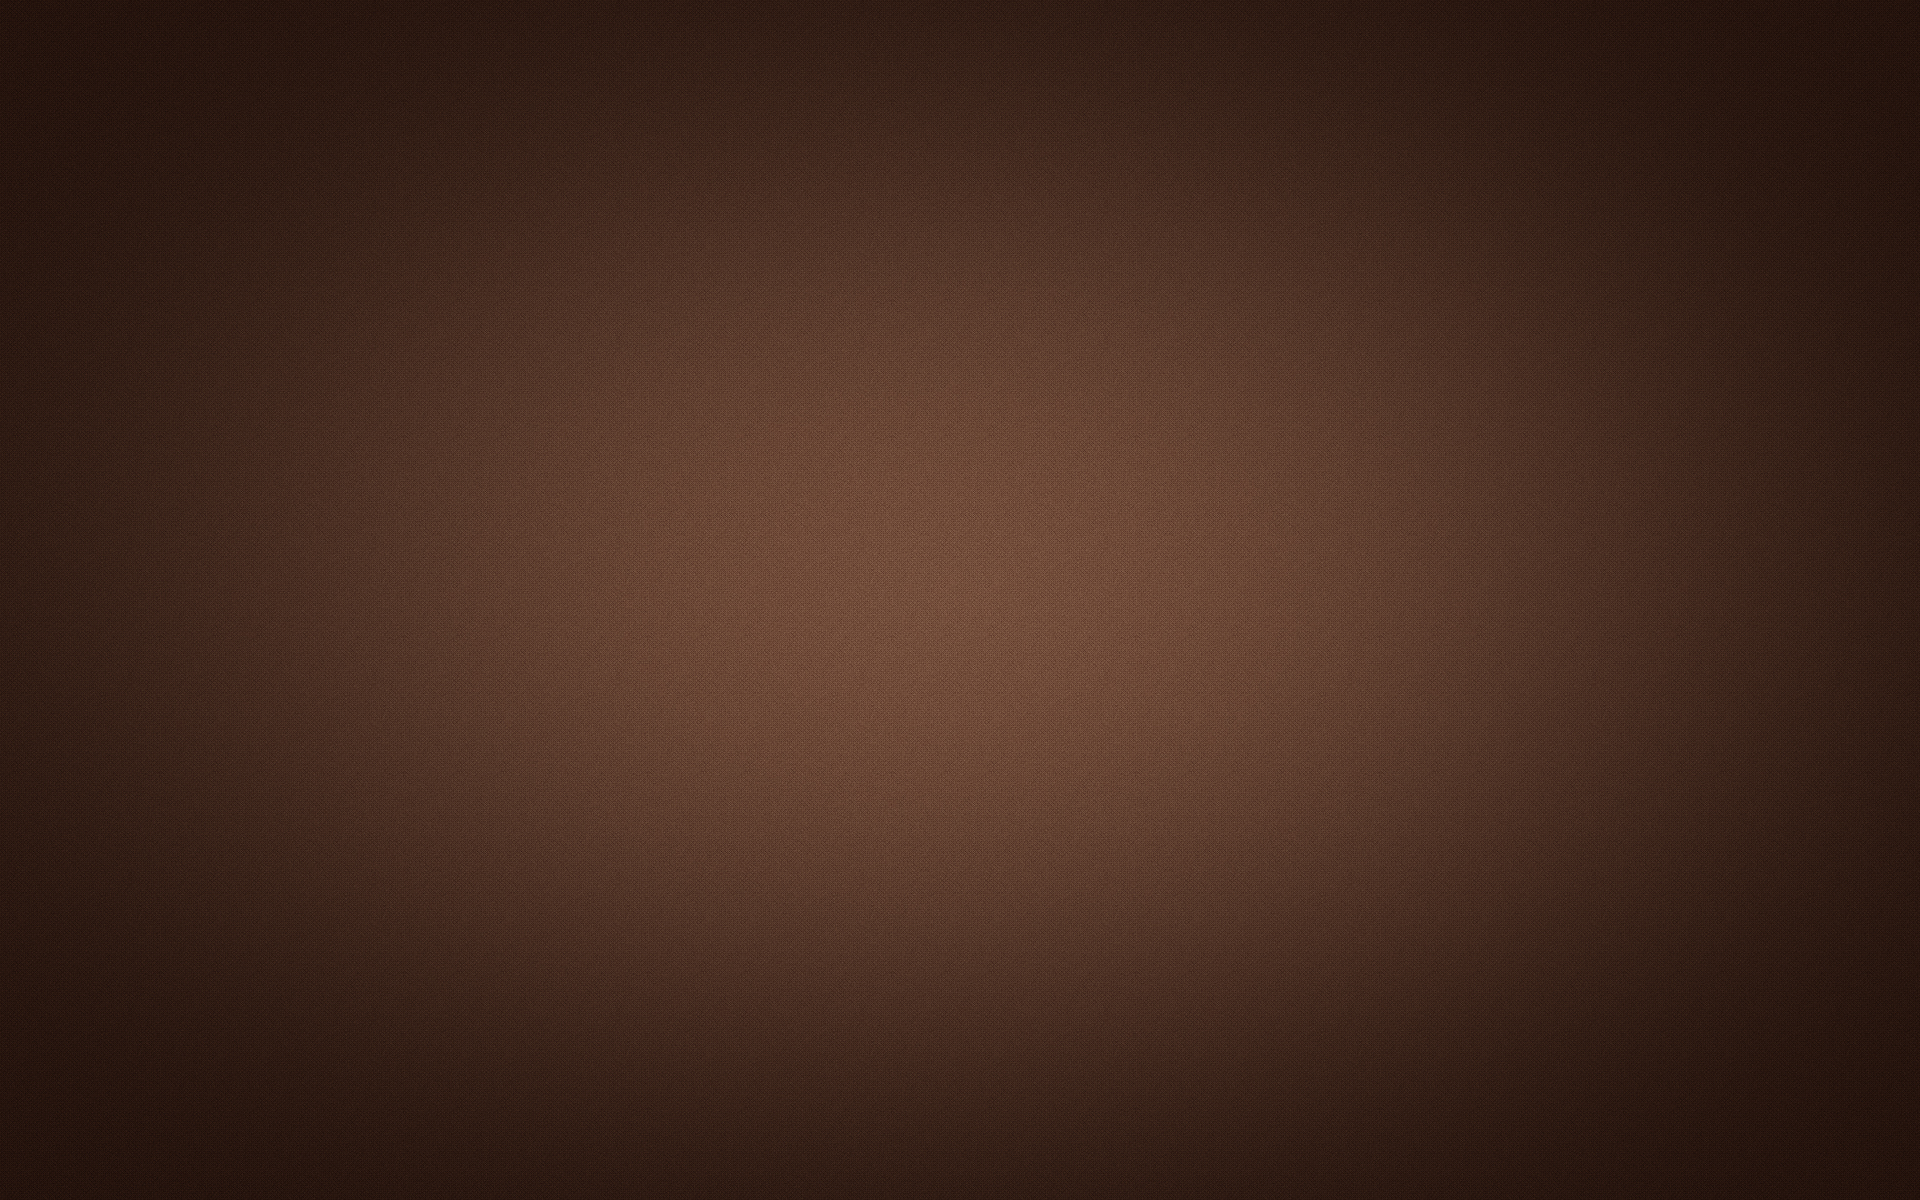 Brown Background Free Download